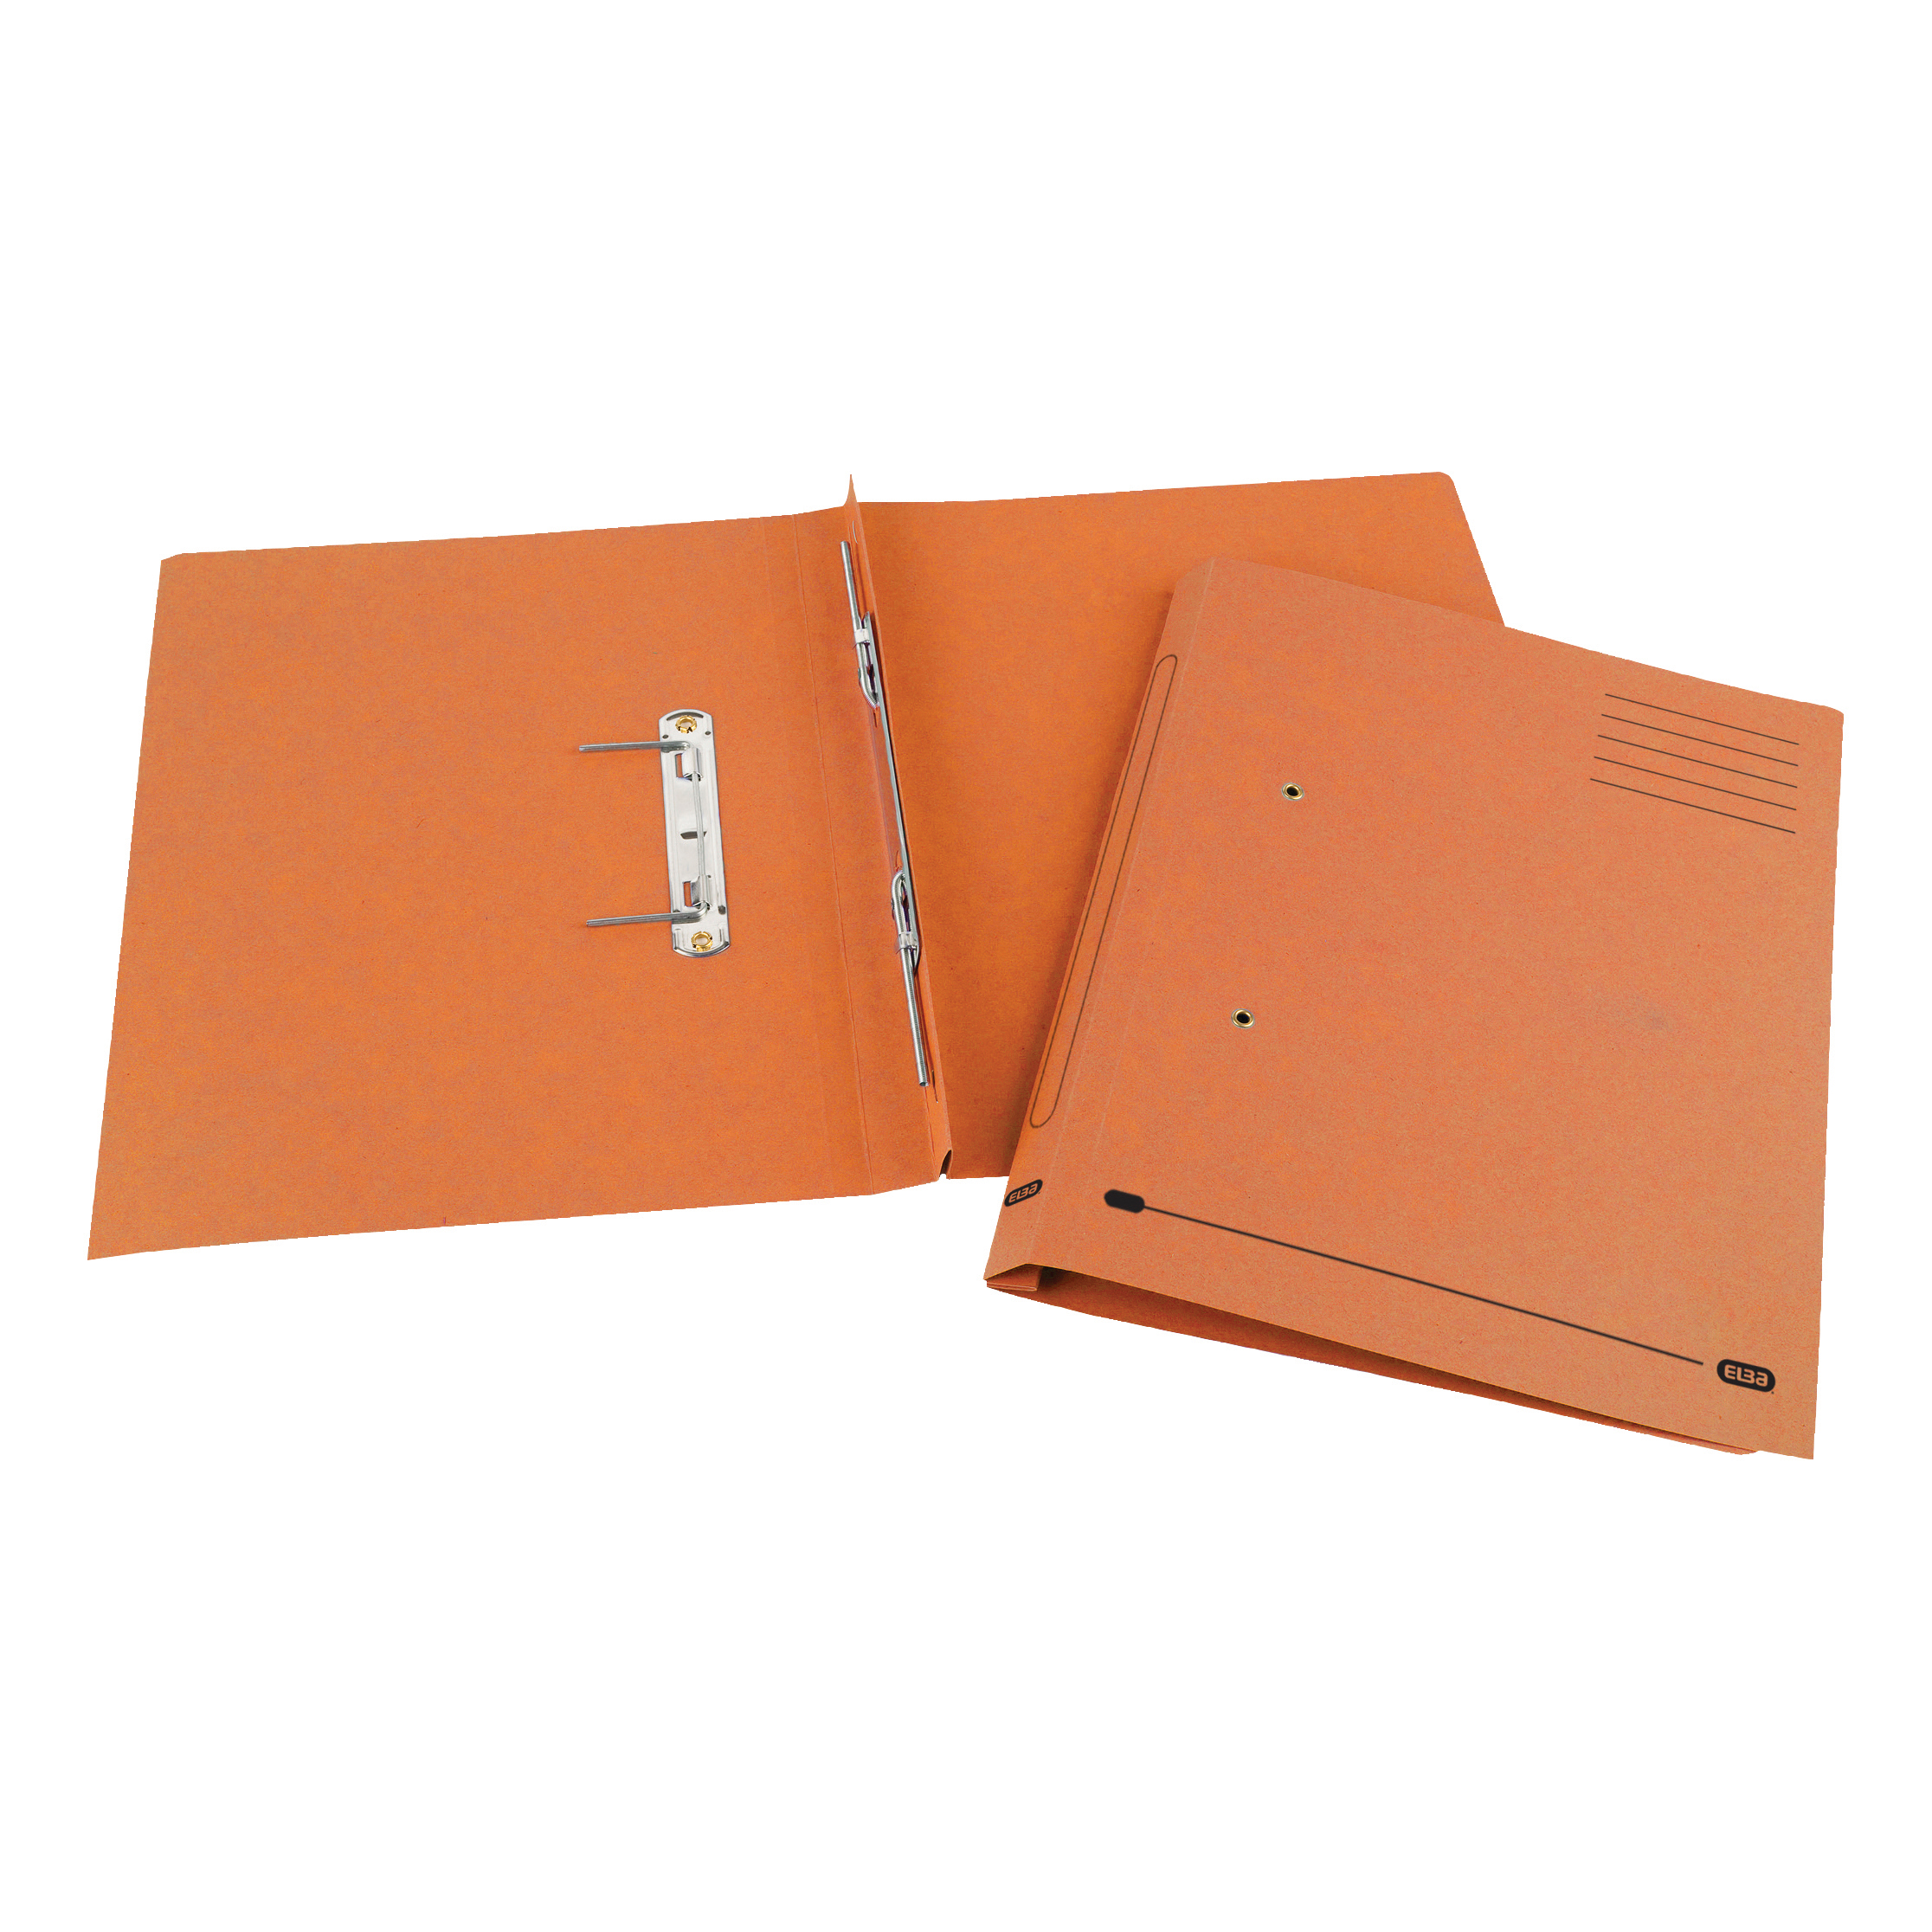 Elba Spirosort Transfer Spring File Recycled Mediumweight 285gsm Foolscap Orange Ref 100090161 [Pack 25]